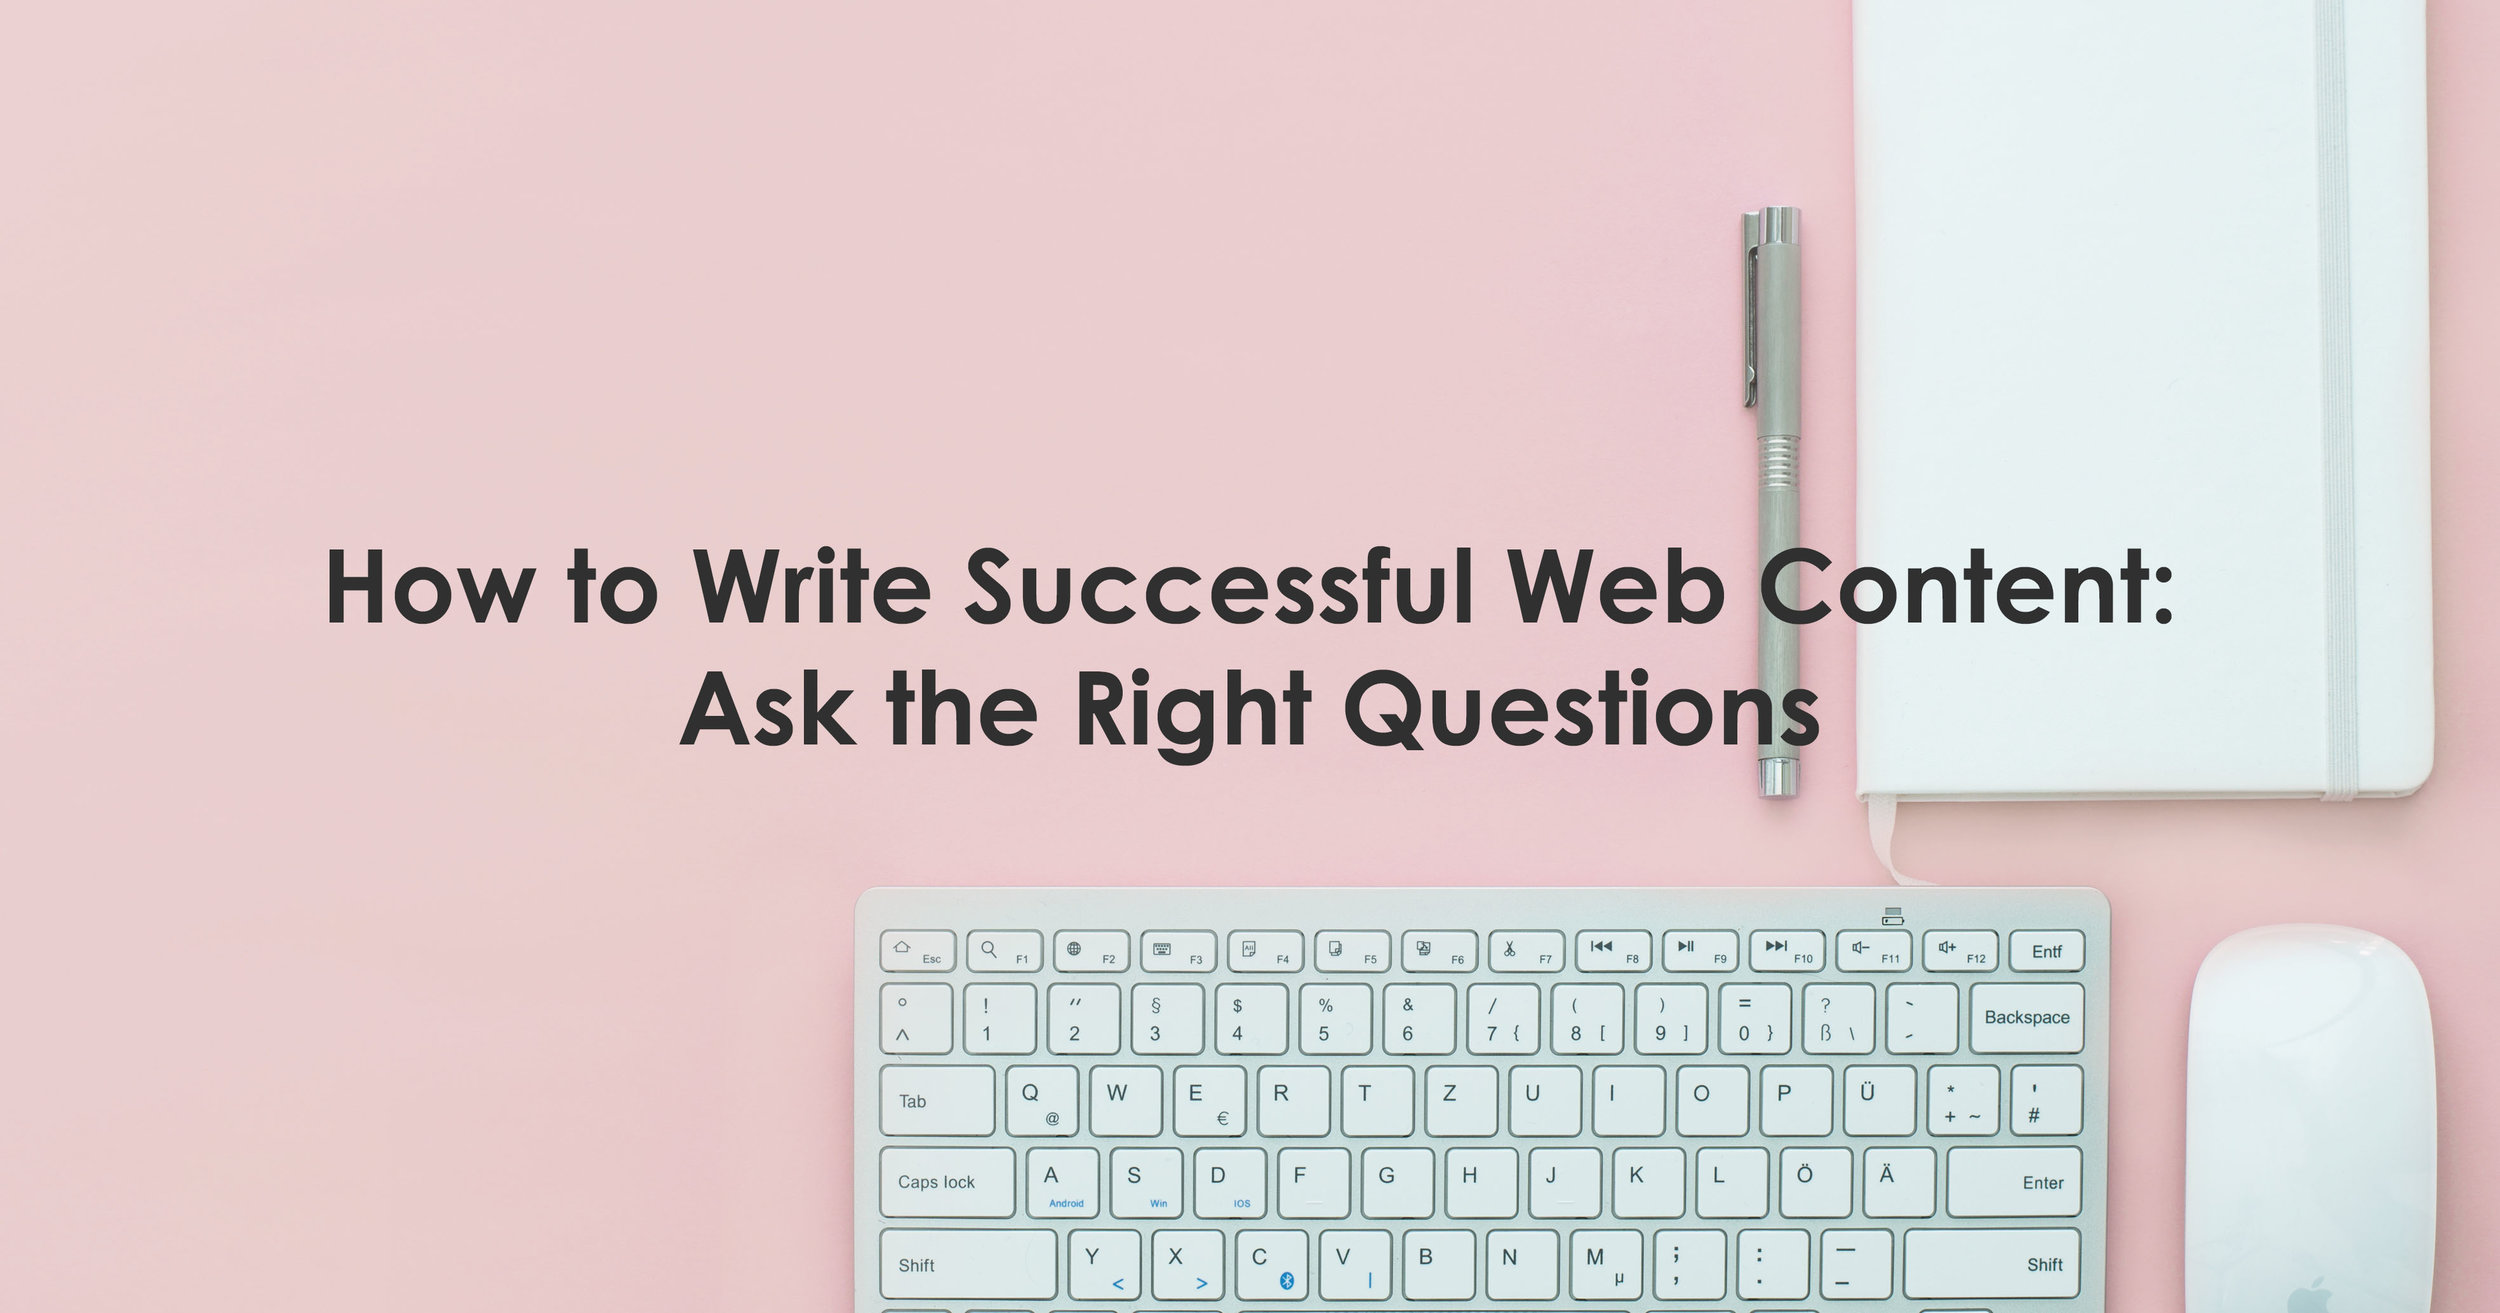 How to Write Successful Web Content (2).jpg